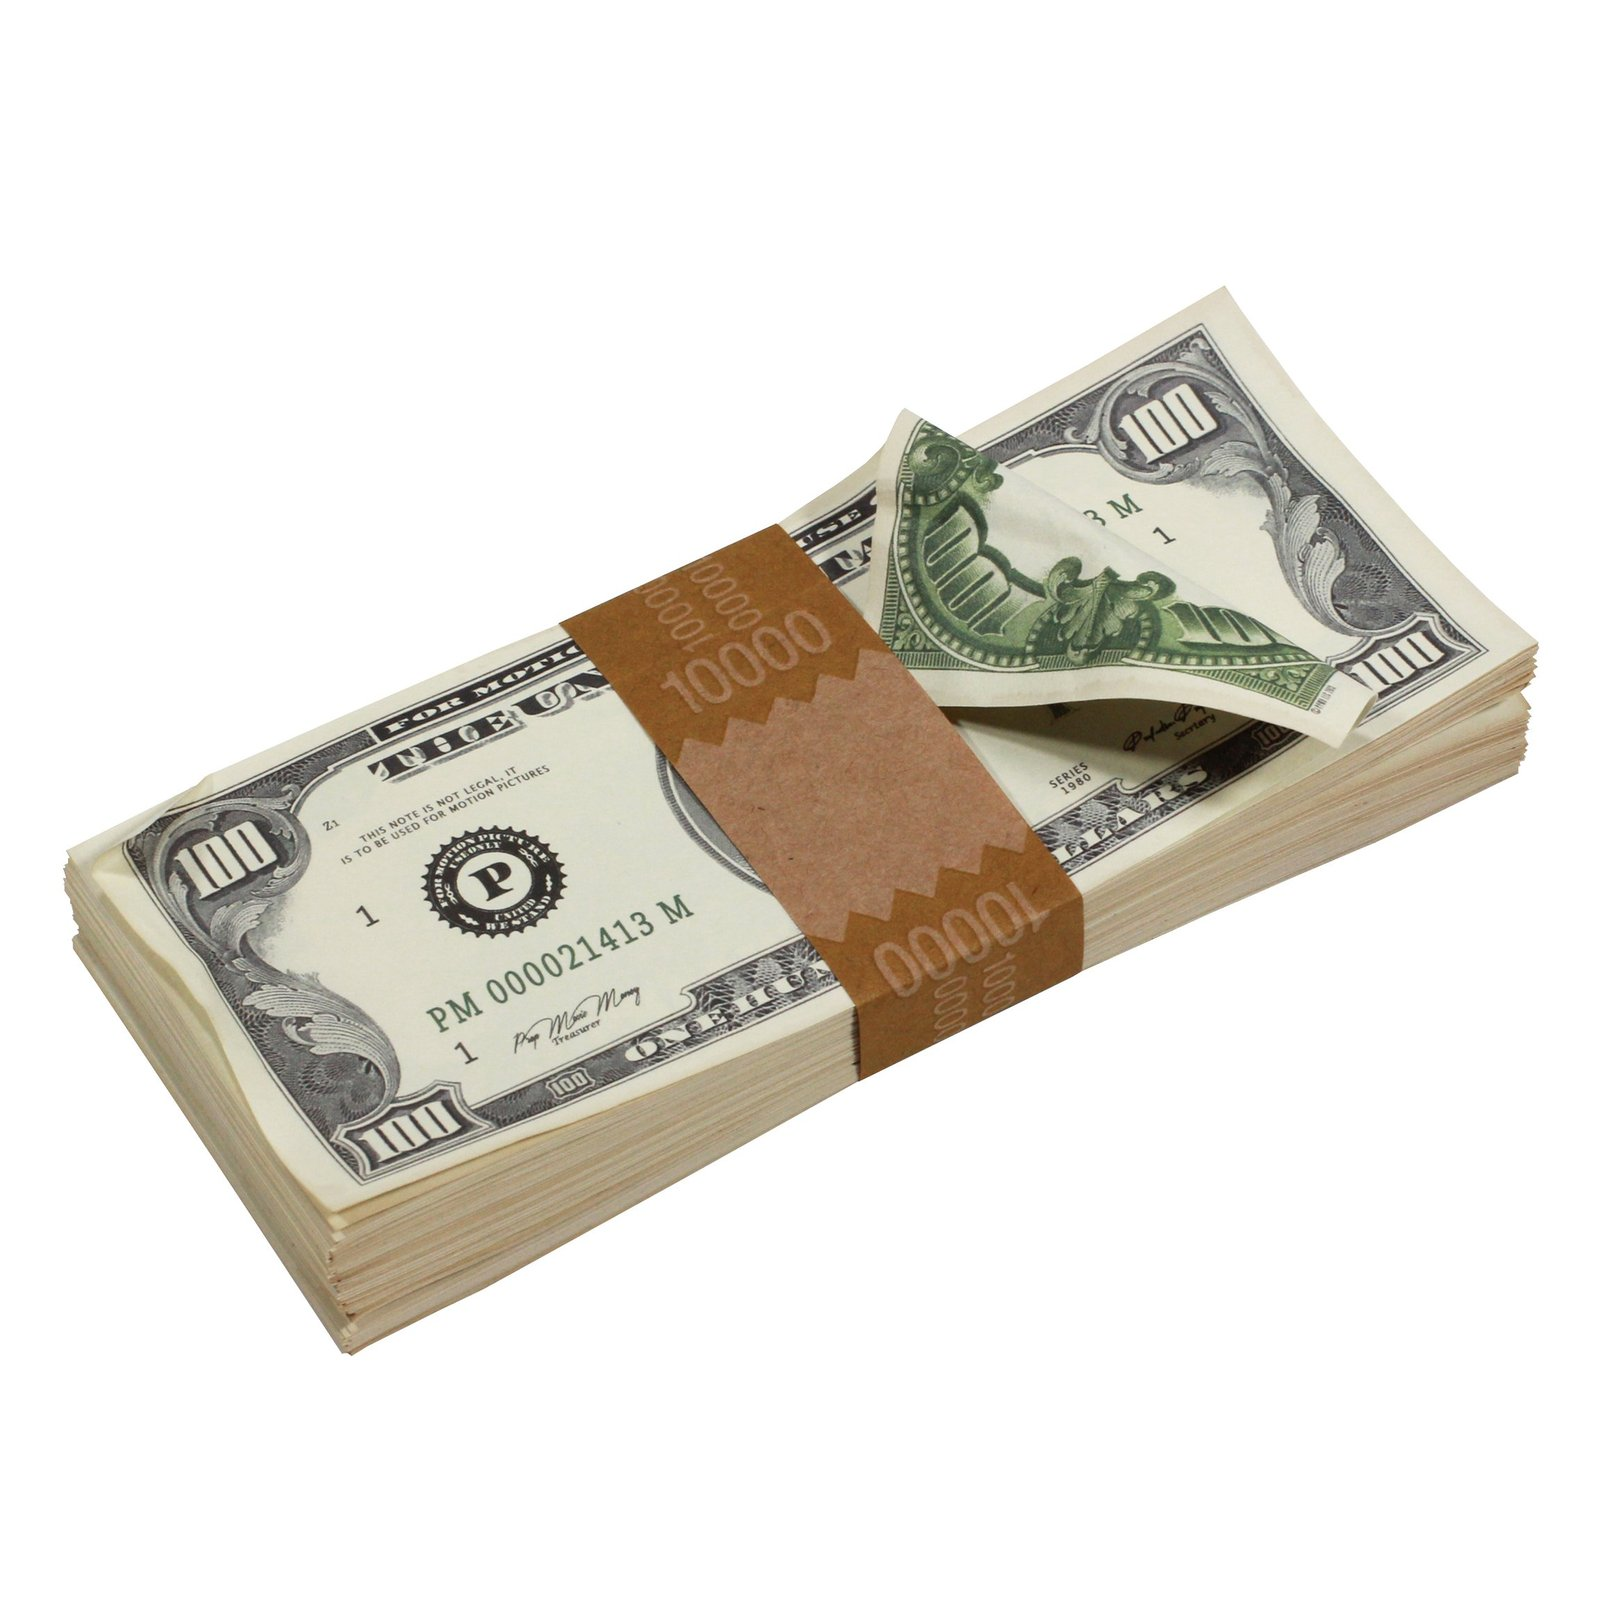 1980s Series $100s Aged $1,000,000 Full Print Package Realistic Prop Money image 2